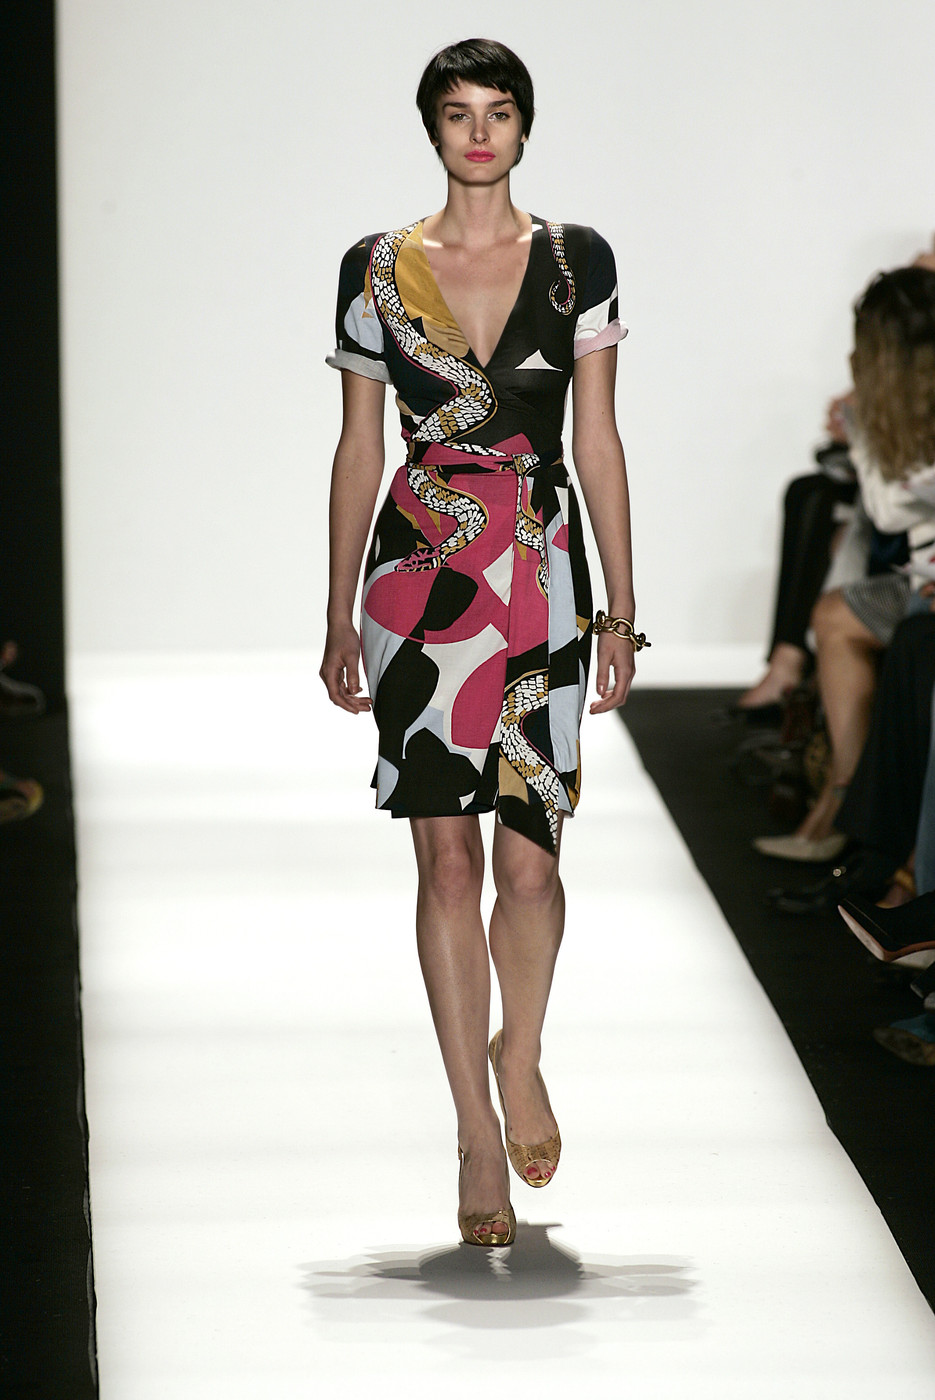 via fashioned by love | Diane von Furstenberg wrap-dress Spring/Summer 2007